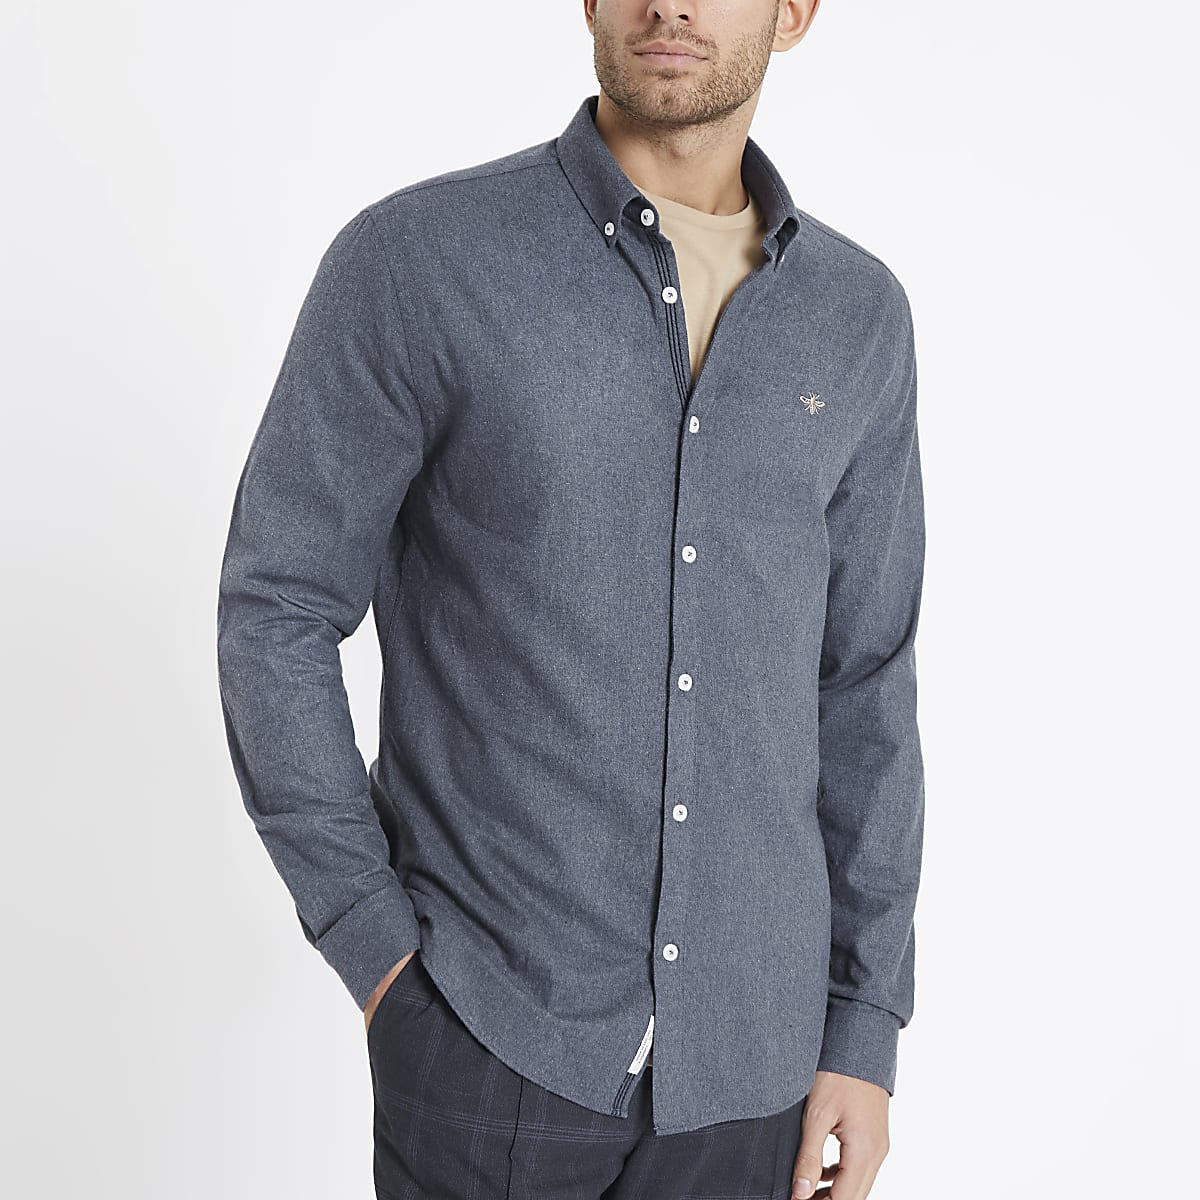 Blue wasp embroidered long sleeve shirt